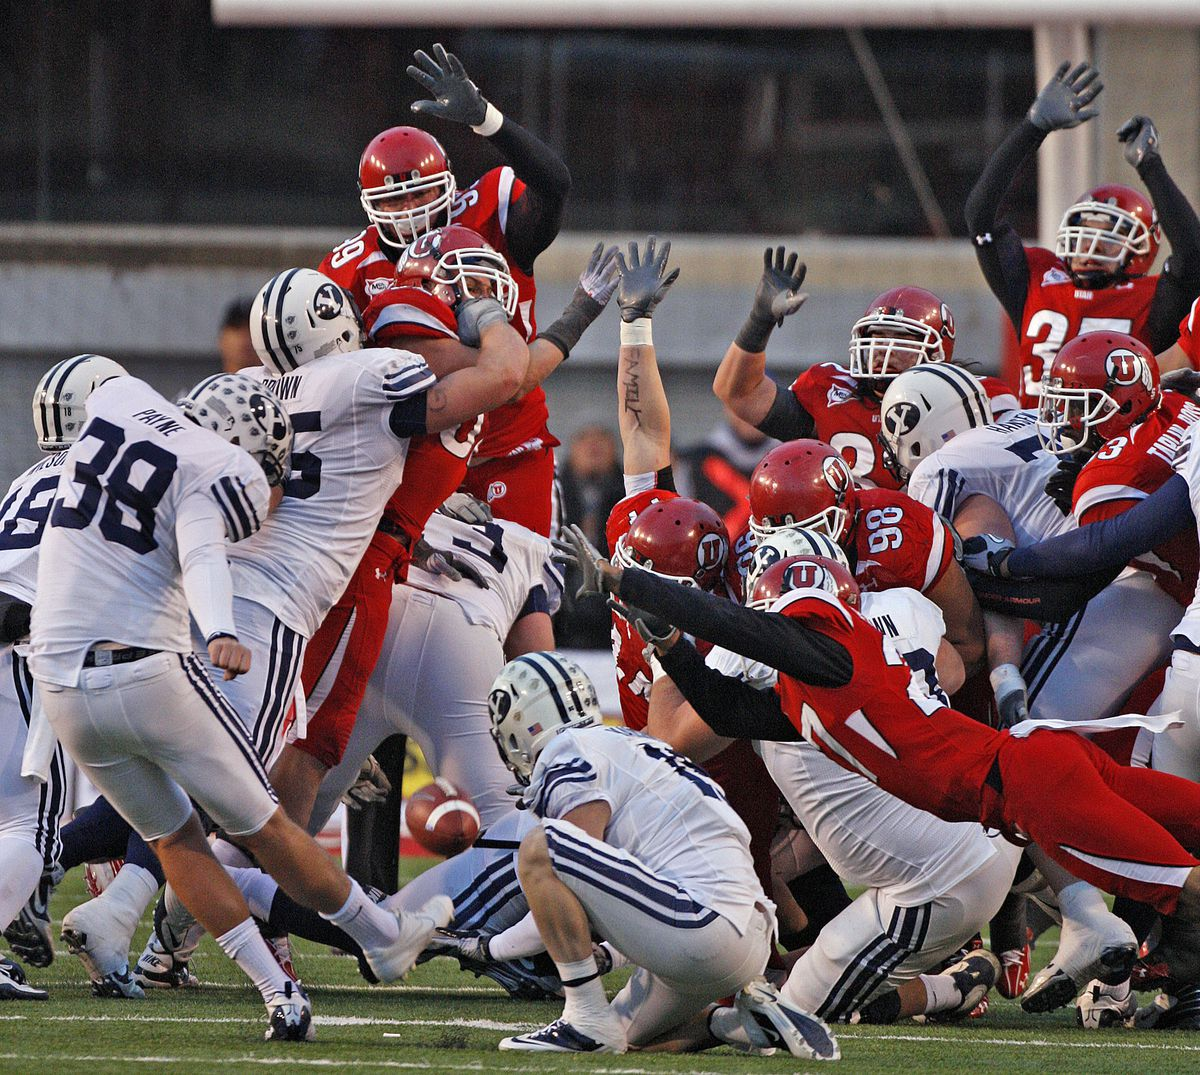 Utah's Brandon Burton (lower right) blocks BYU's Mitch Payne's field goal attempt in the final seconds as the University of Utah beat BYU 17-16 in MWC football action Saturday, Nov. 27, 2010, in Salt Lake City.